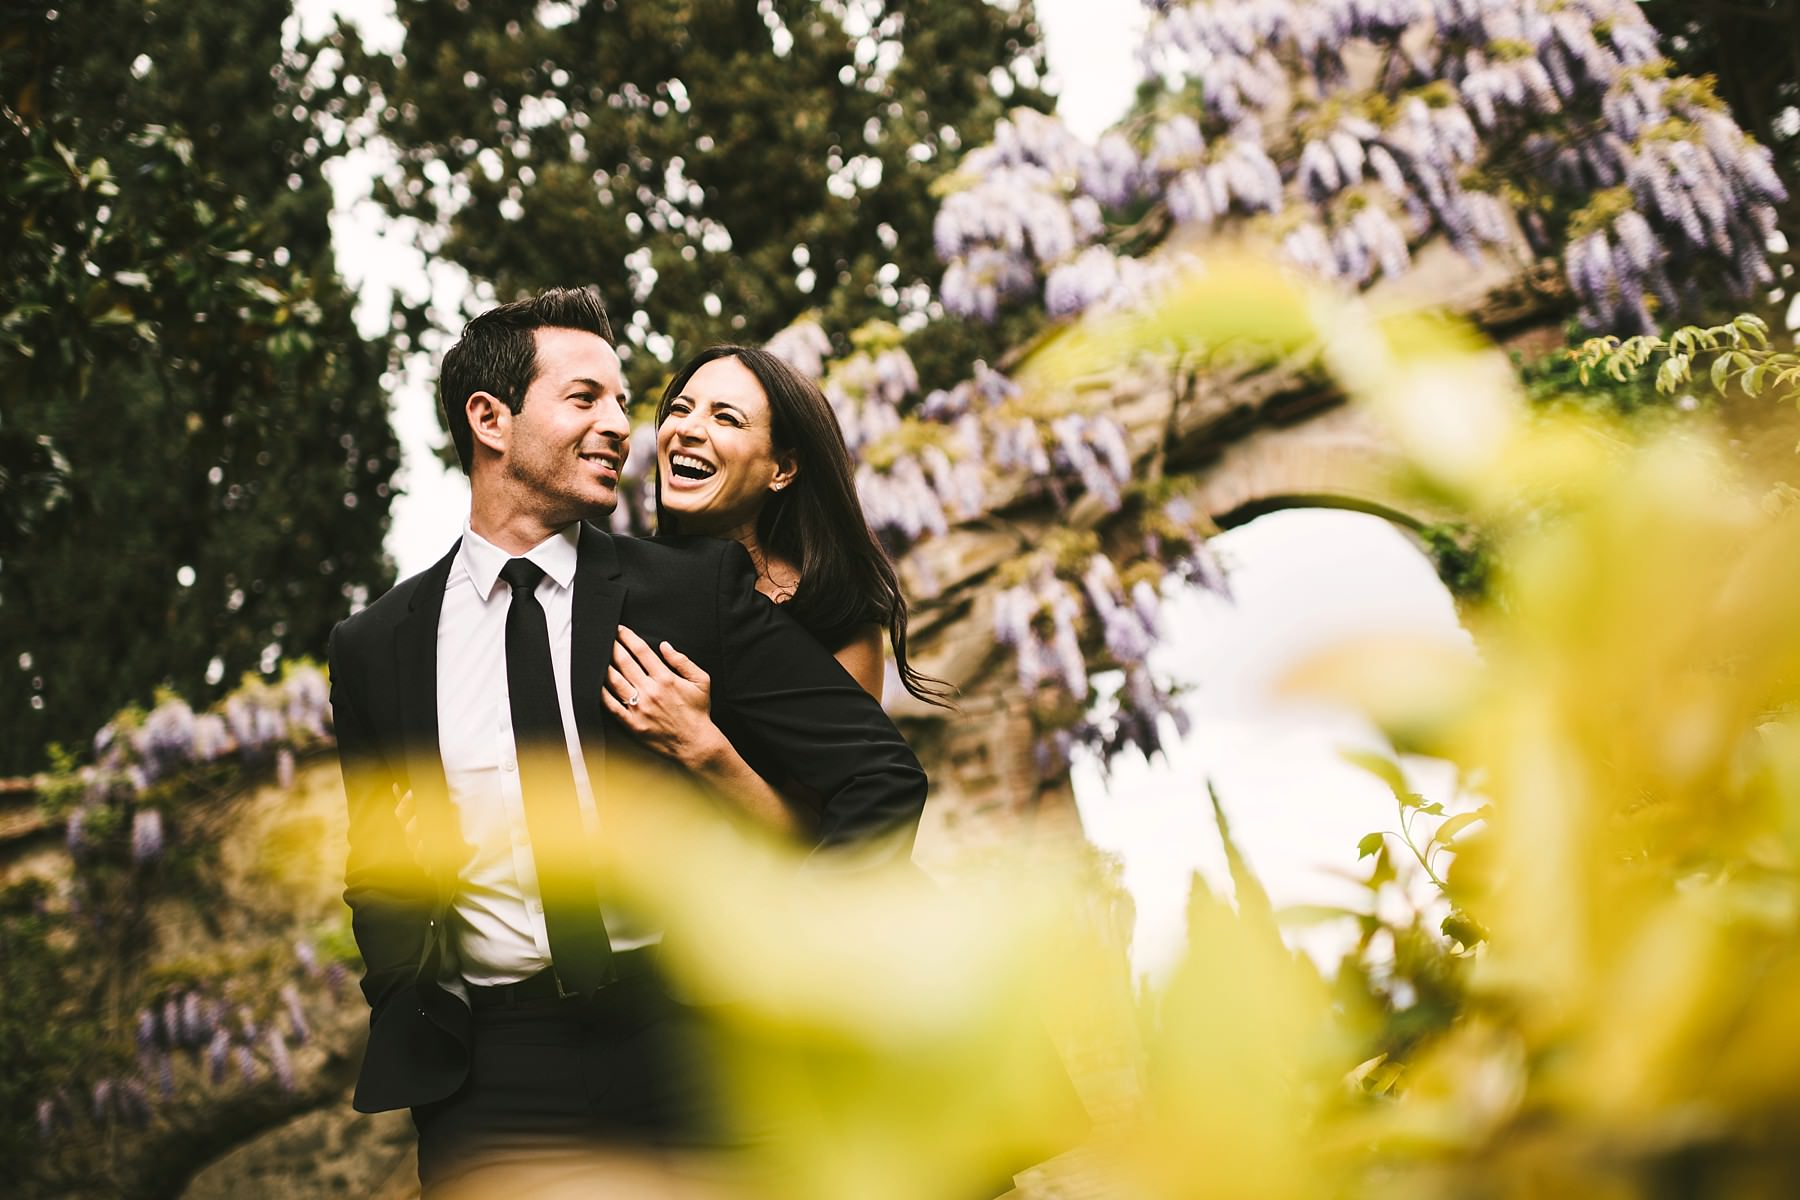 Romantic couple portrait engagement pre-wedding photo shoot at the historical residence of Torre Bellosguardo. Your love deserves to be celebrated